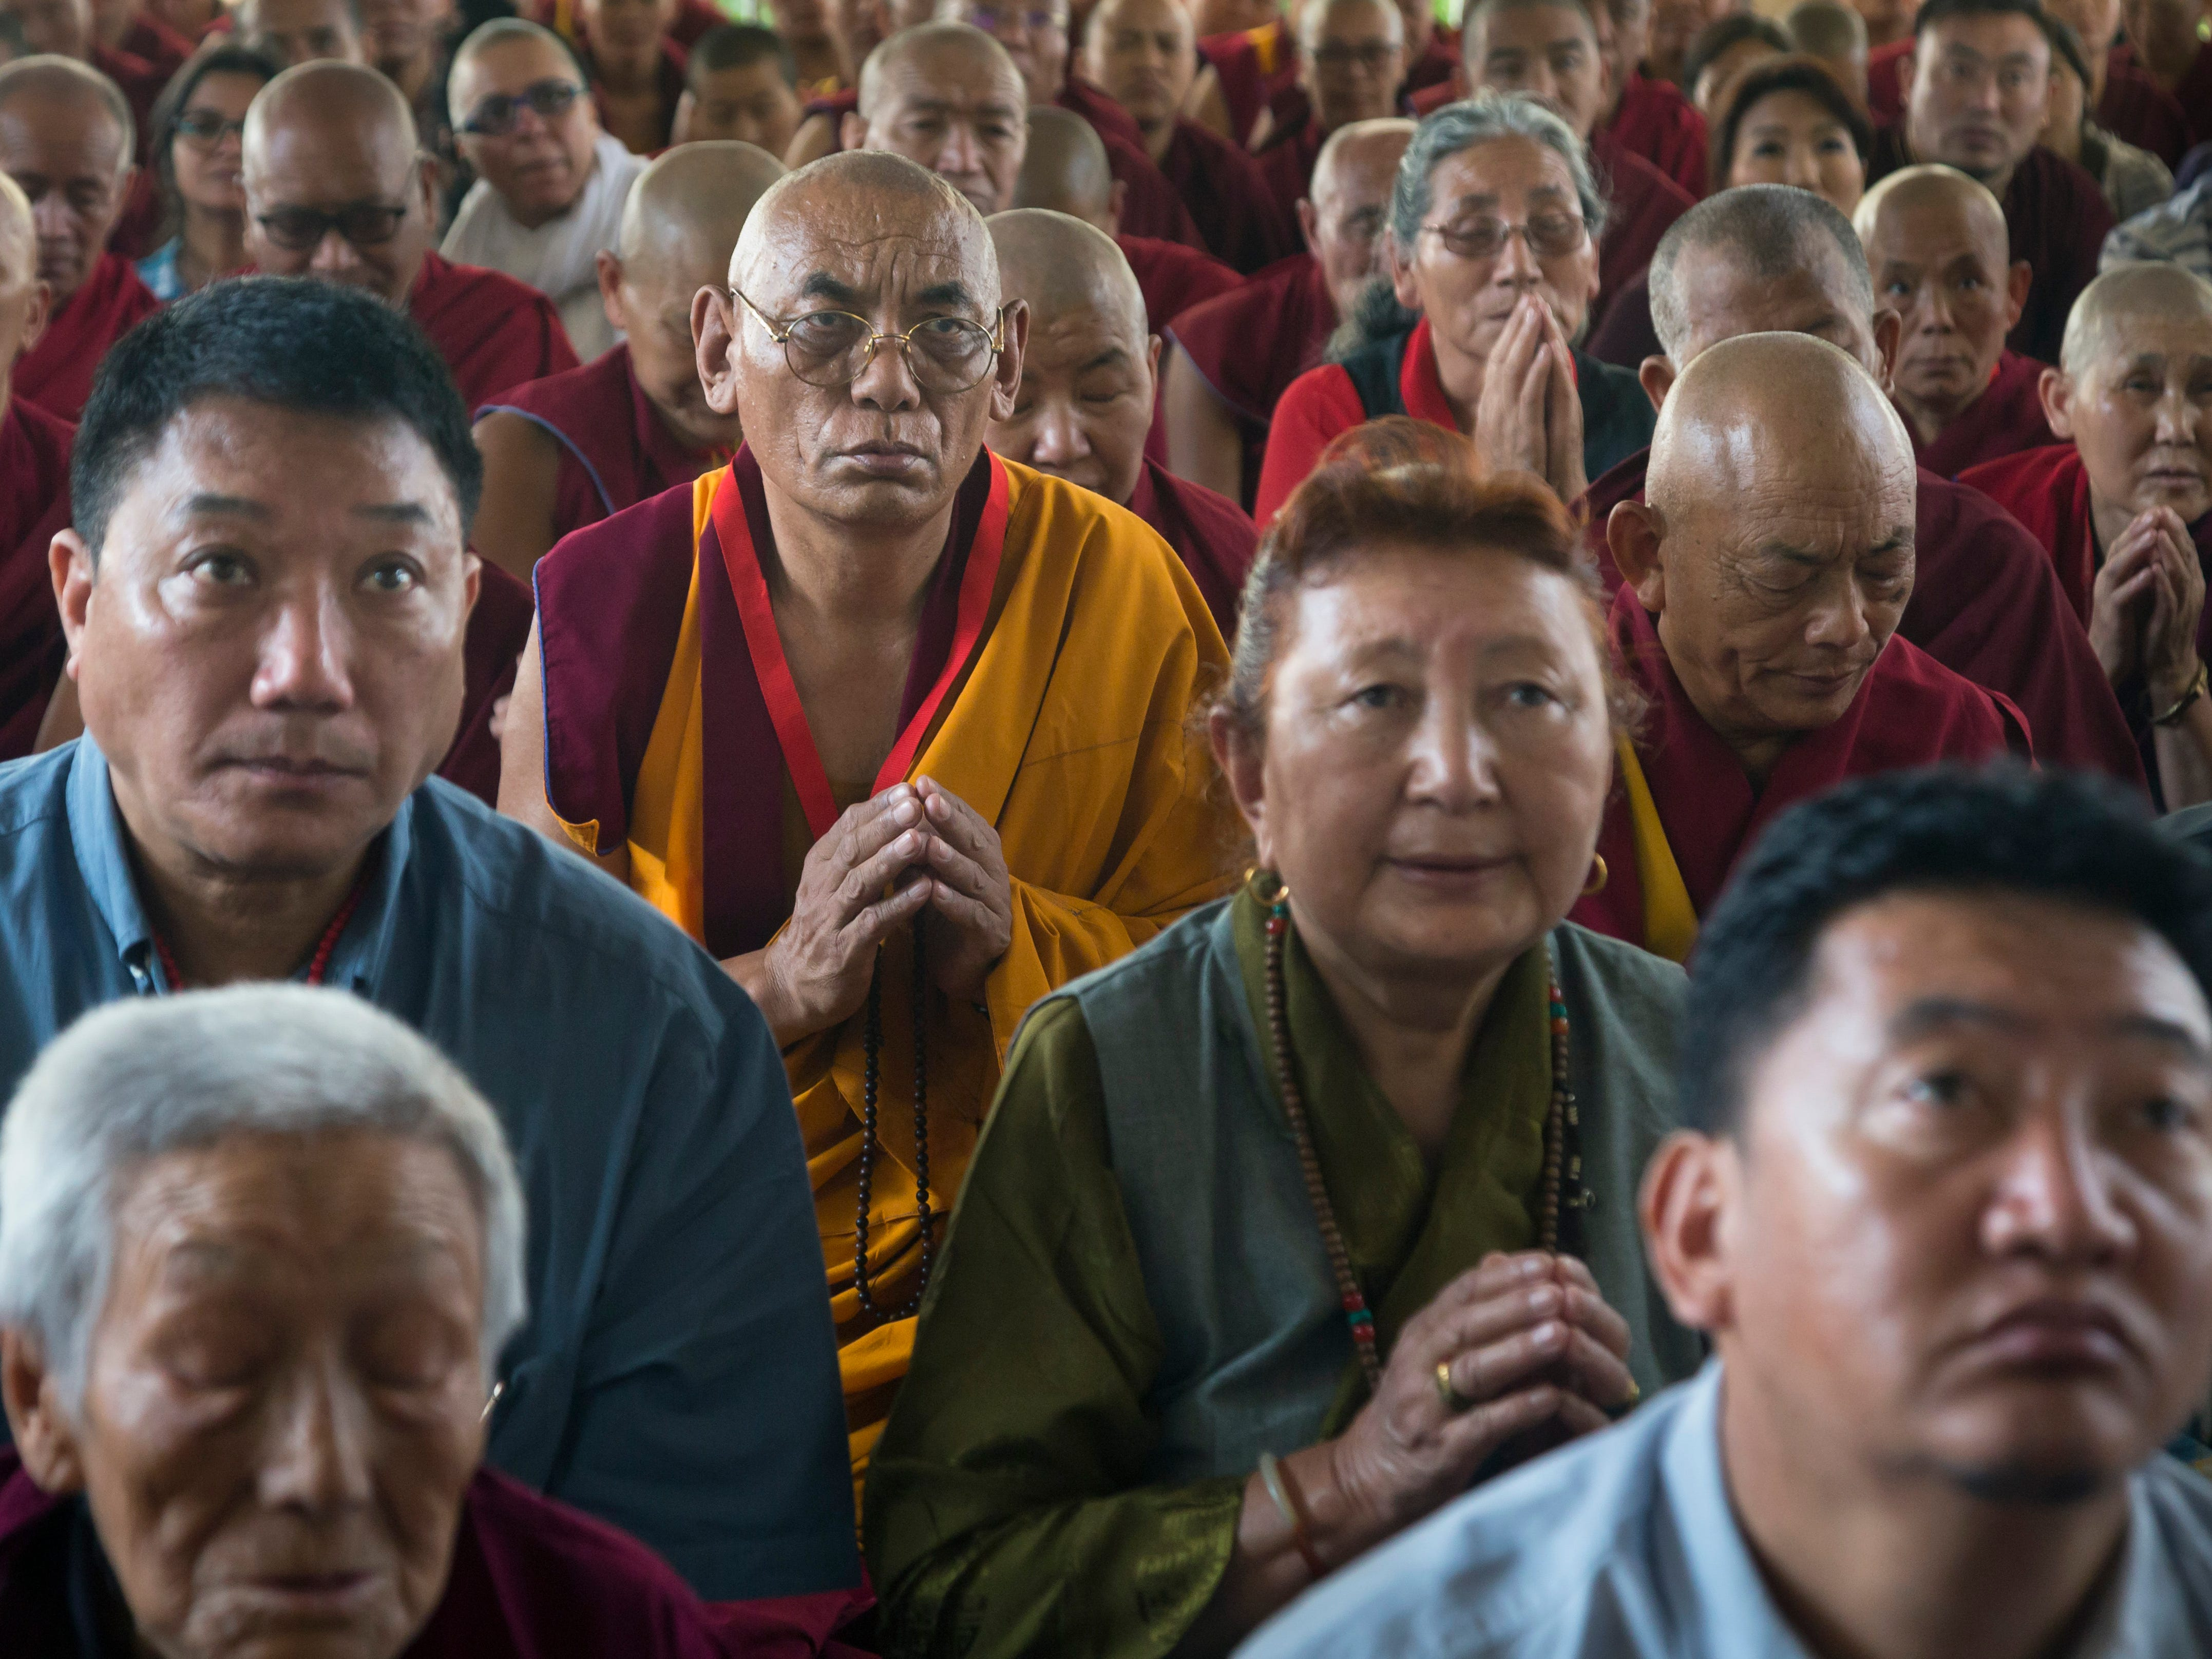 Exile Tibetans listen to their spiritual leader the Dalai Lama during a religious talk at the Tsuglakhang temple in Dharmsala, India, Friday, May 10, 2019. The Tibetan leader began the three-day talk at the request of a Buddhist group from Russia Friday.